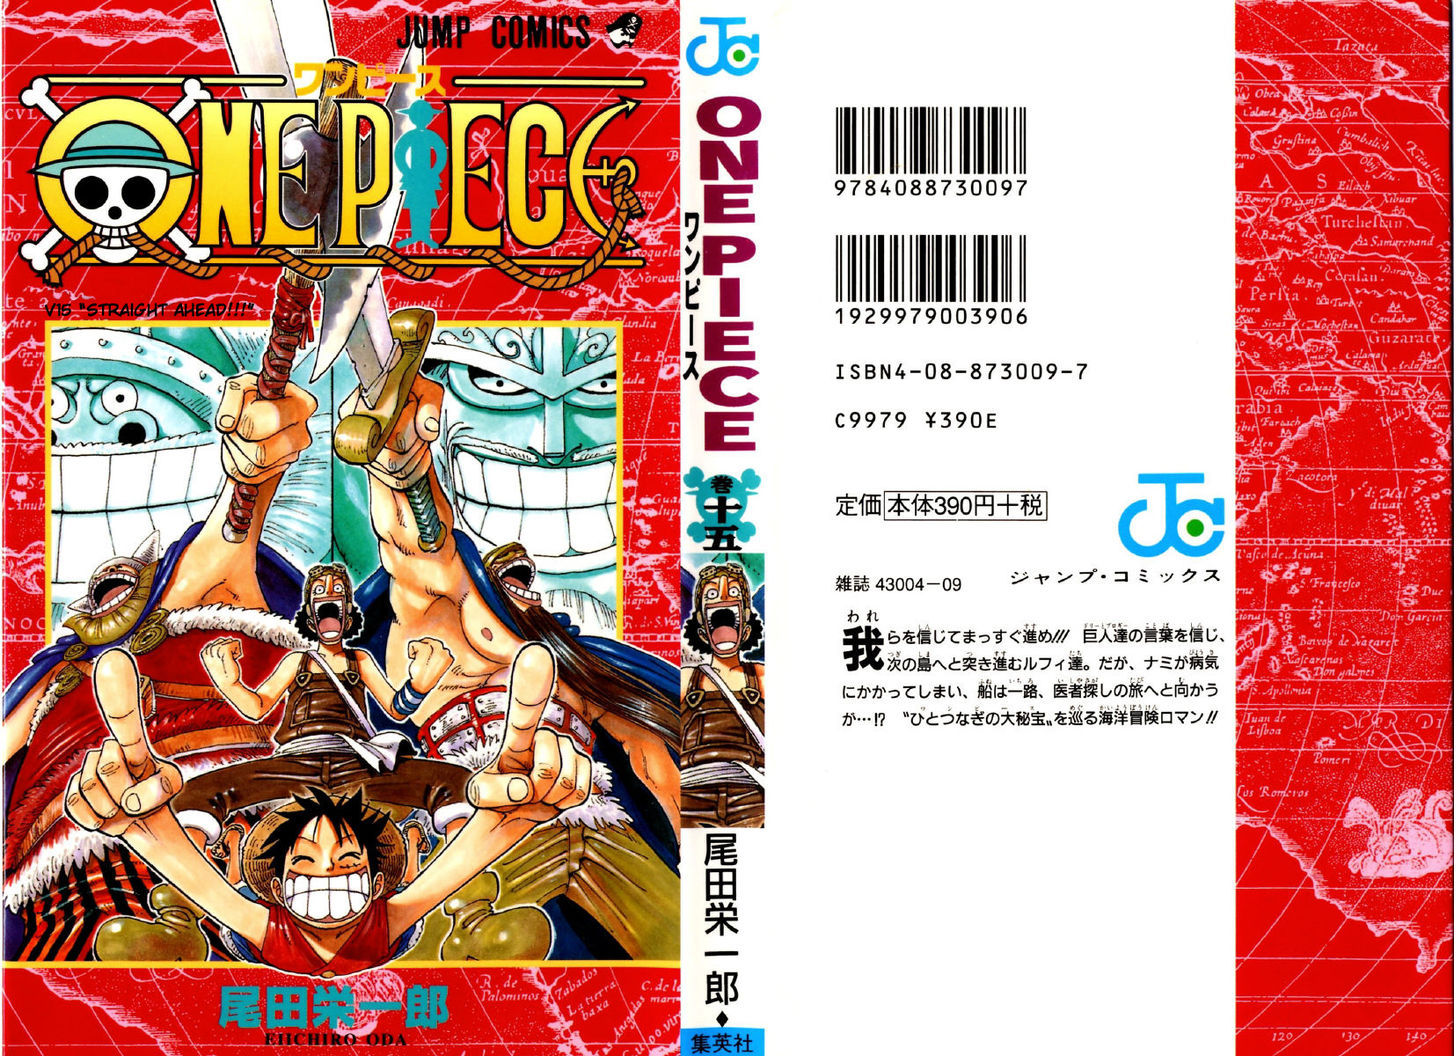 https://im.nineanime.com/comics/pic9/32/96/2475/OnePiece1270907.jpg Page 1